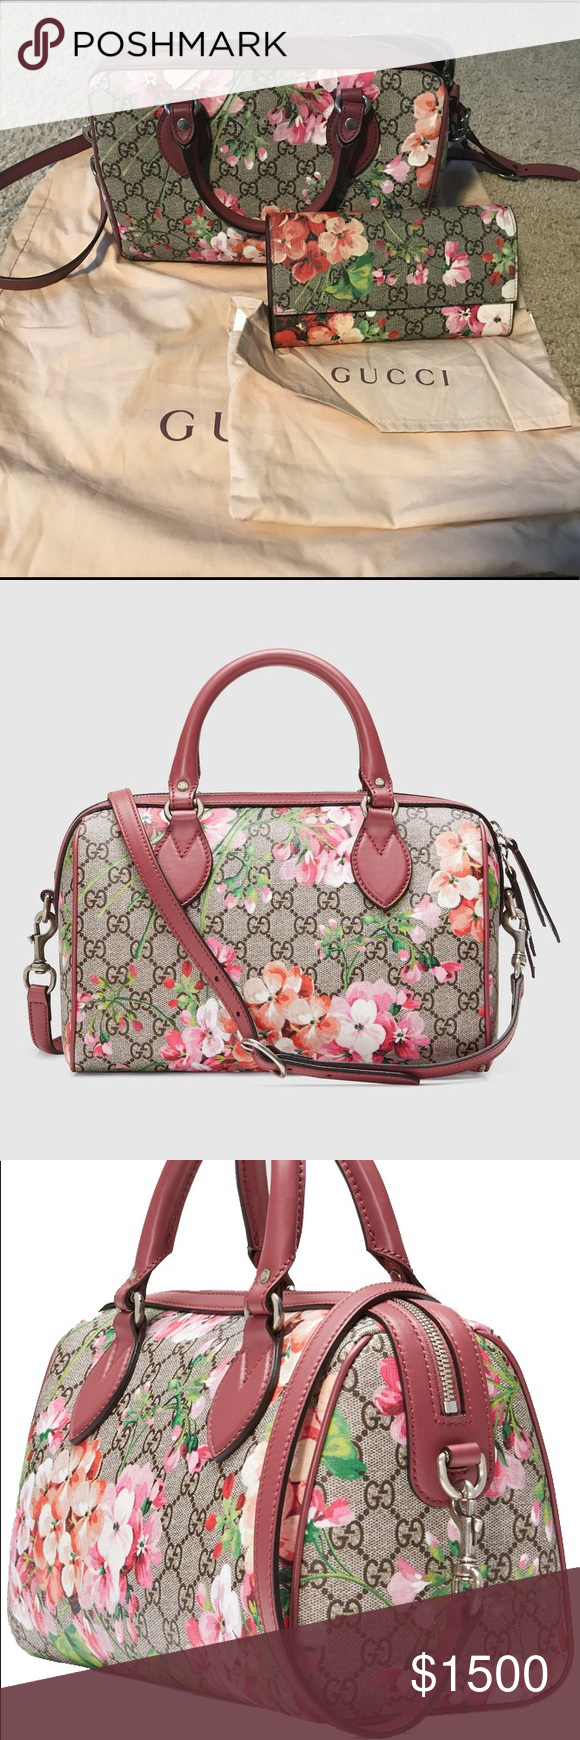 4d563f6bfea5cc Bloom Small GG top handle bag Brand new, unused - 100% authentic Blooms  print